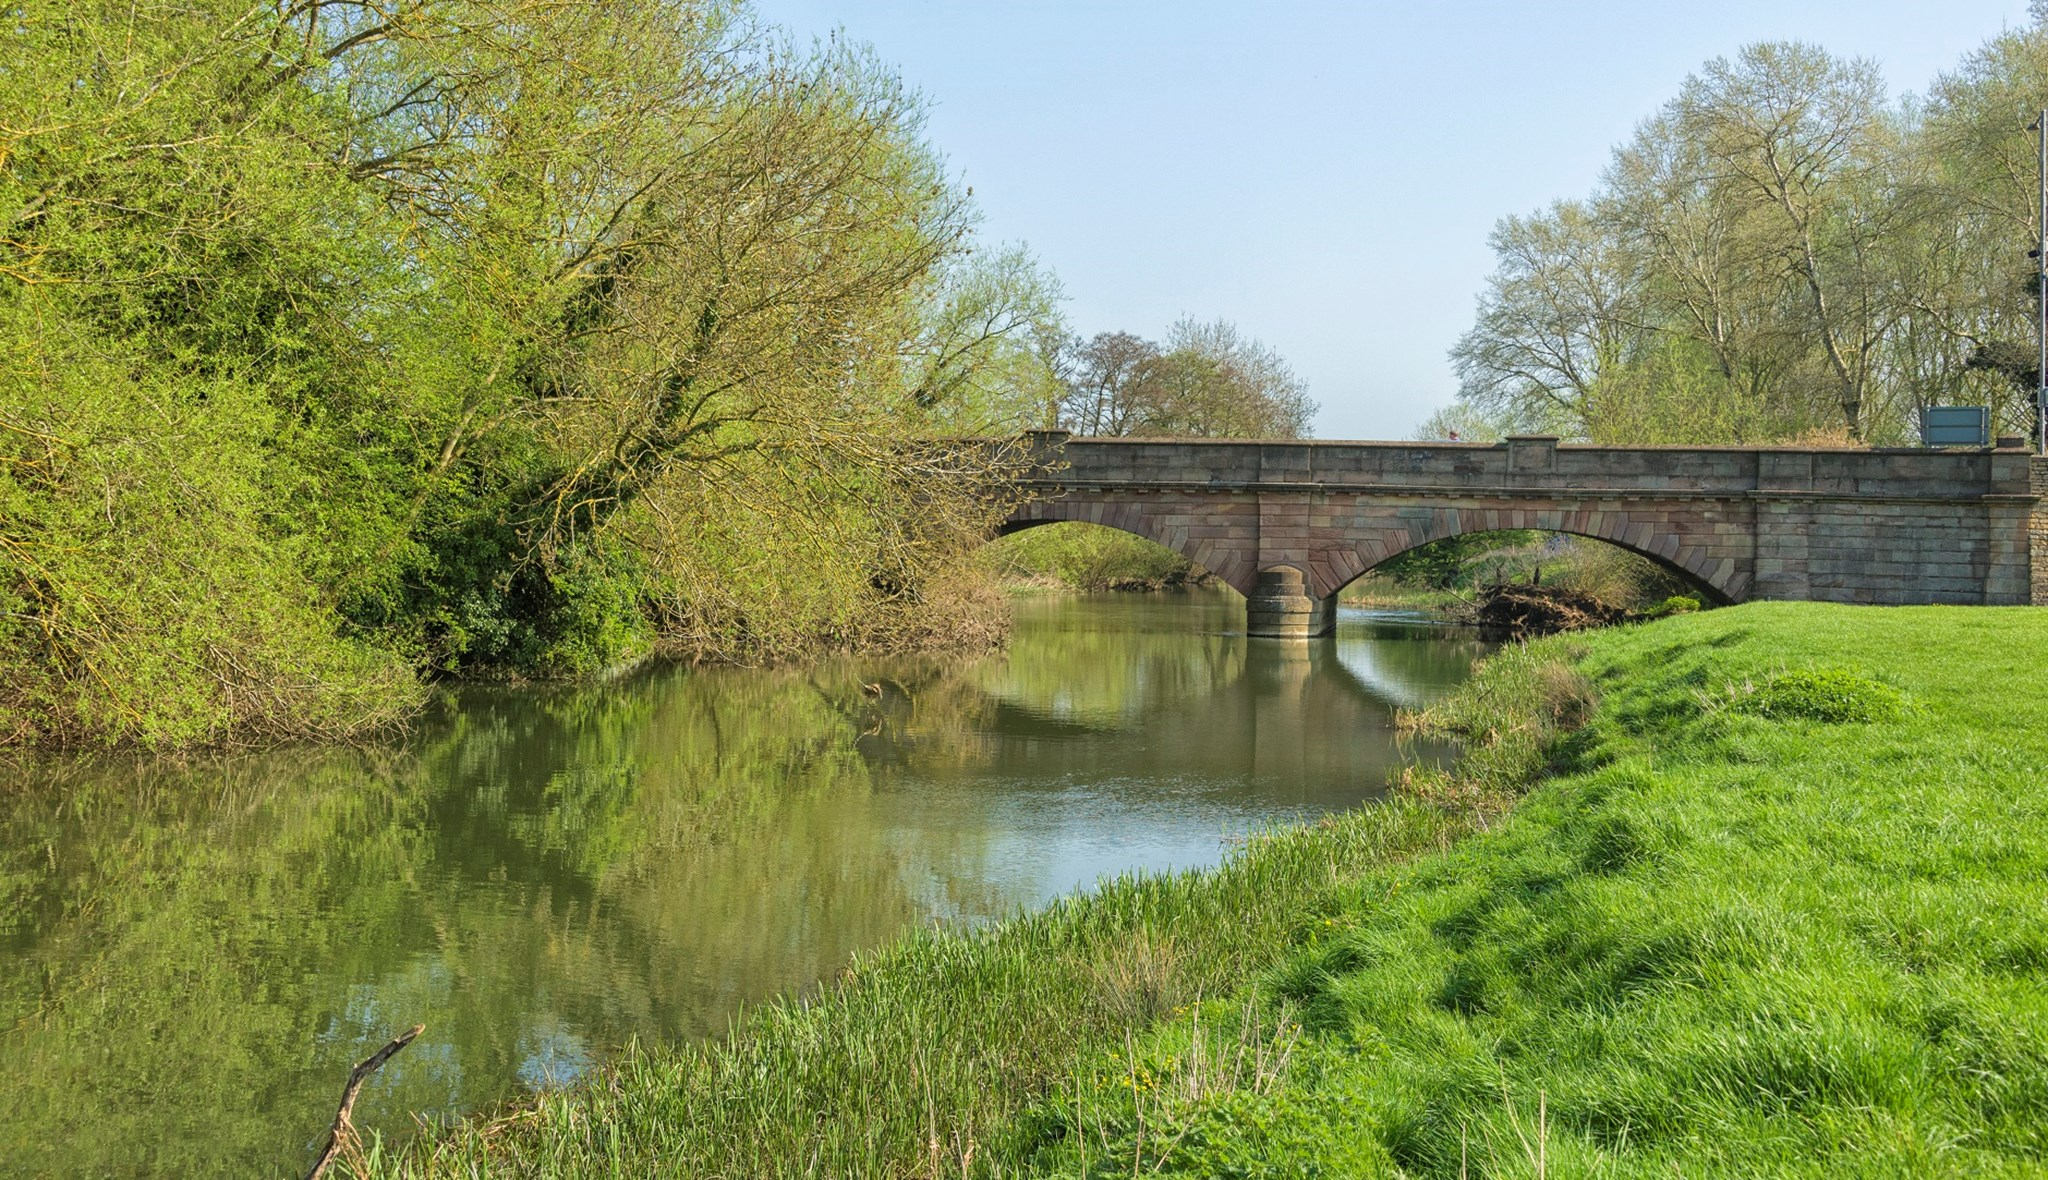 D81_3345Road bridge at Tombs Meadow Ouse Valley Park banner.jpg